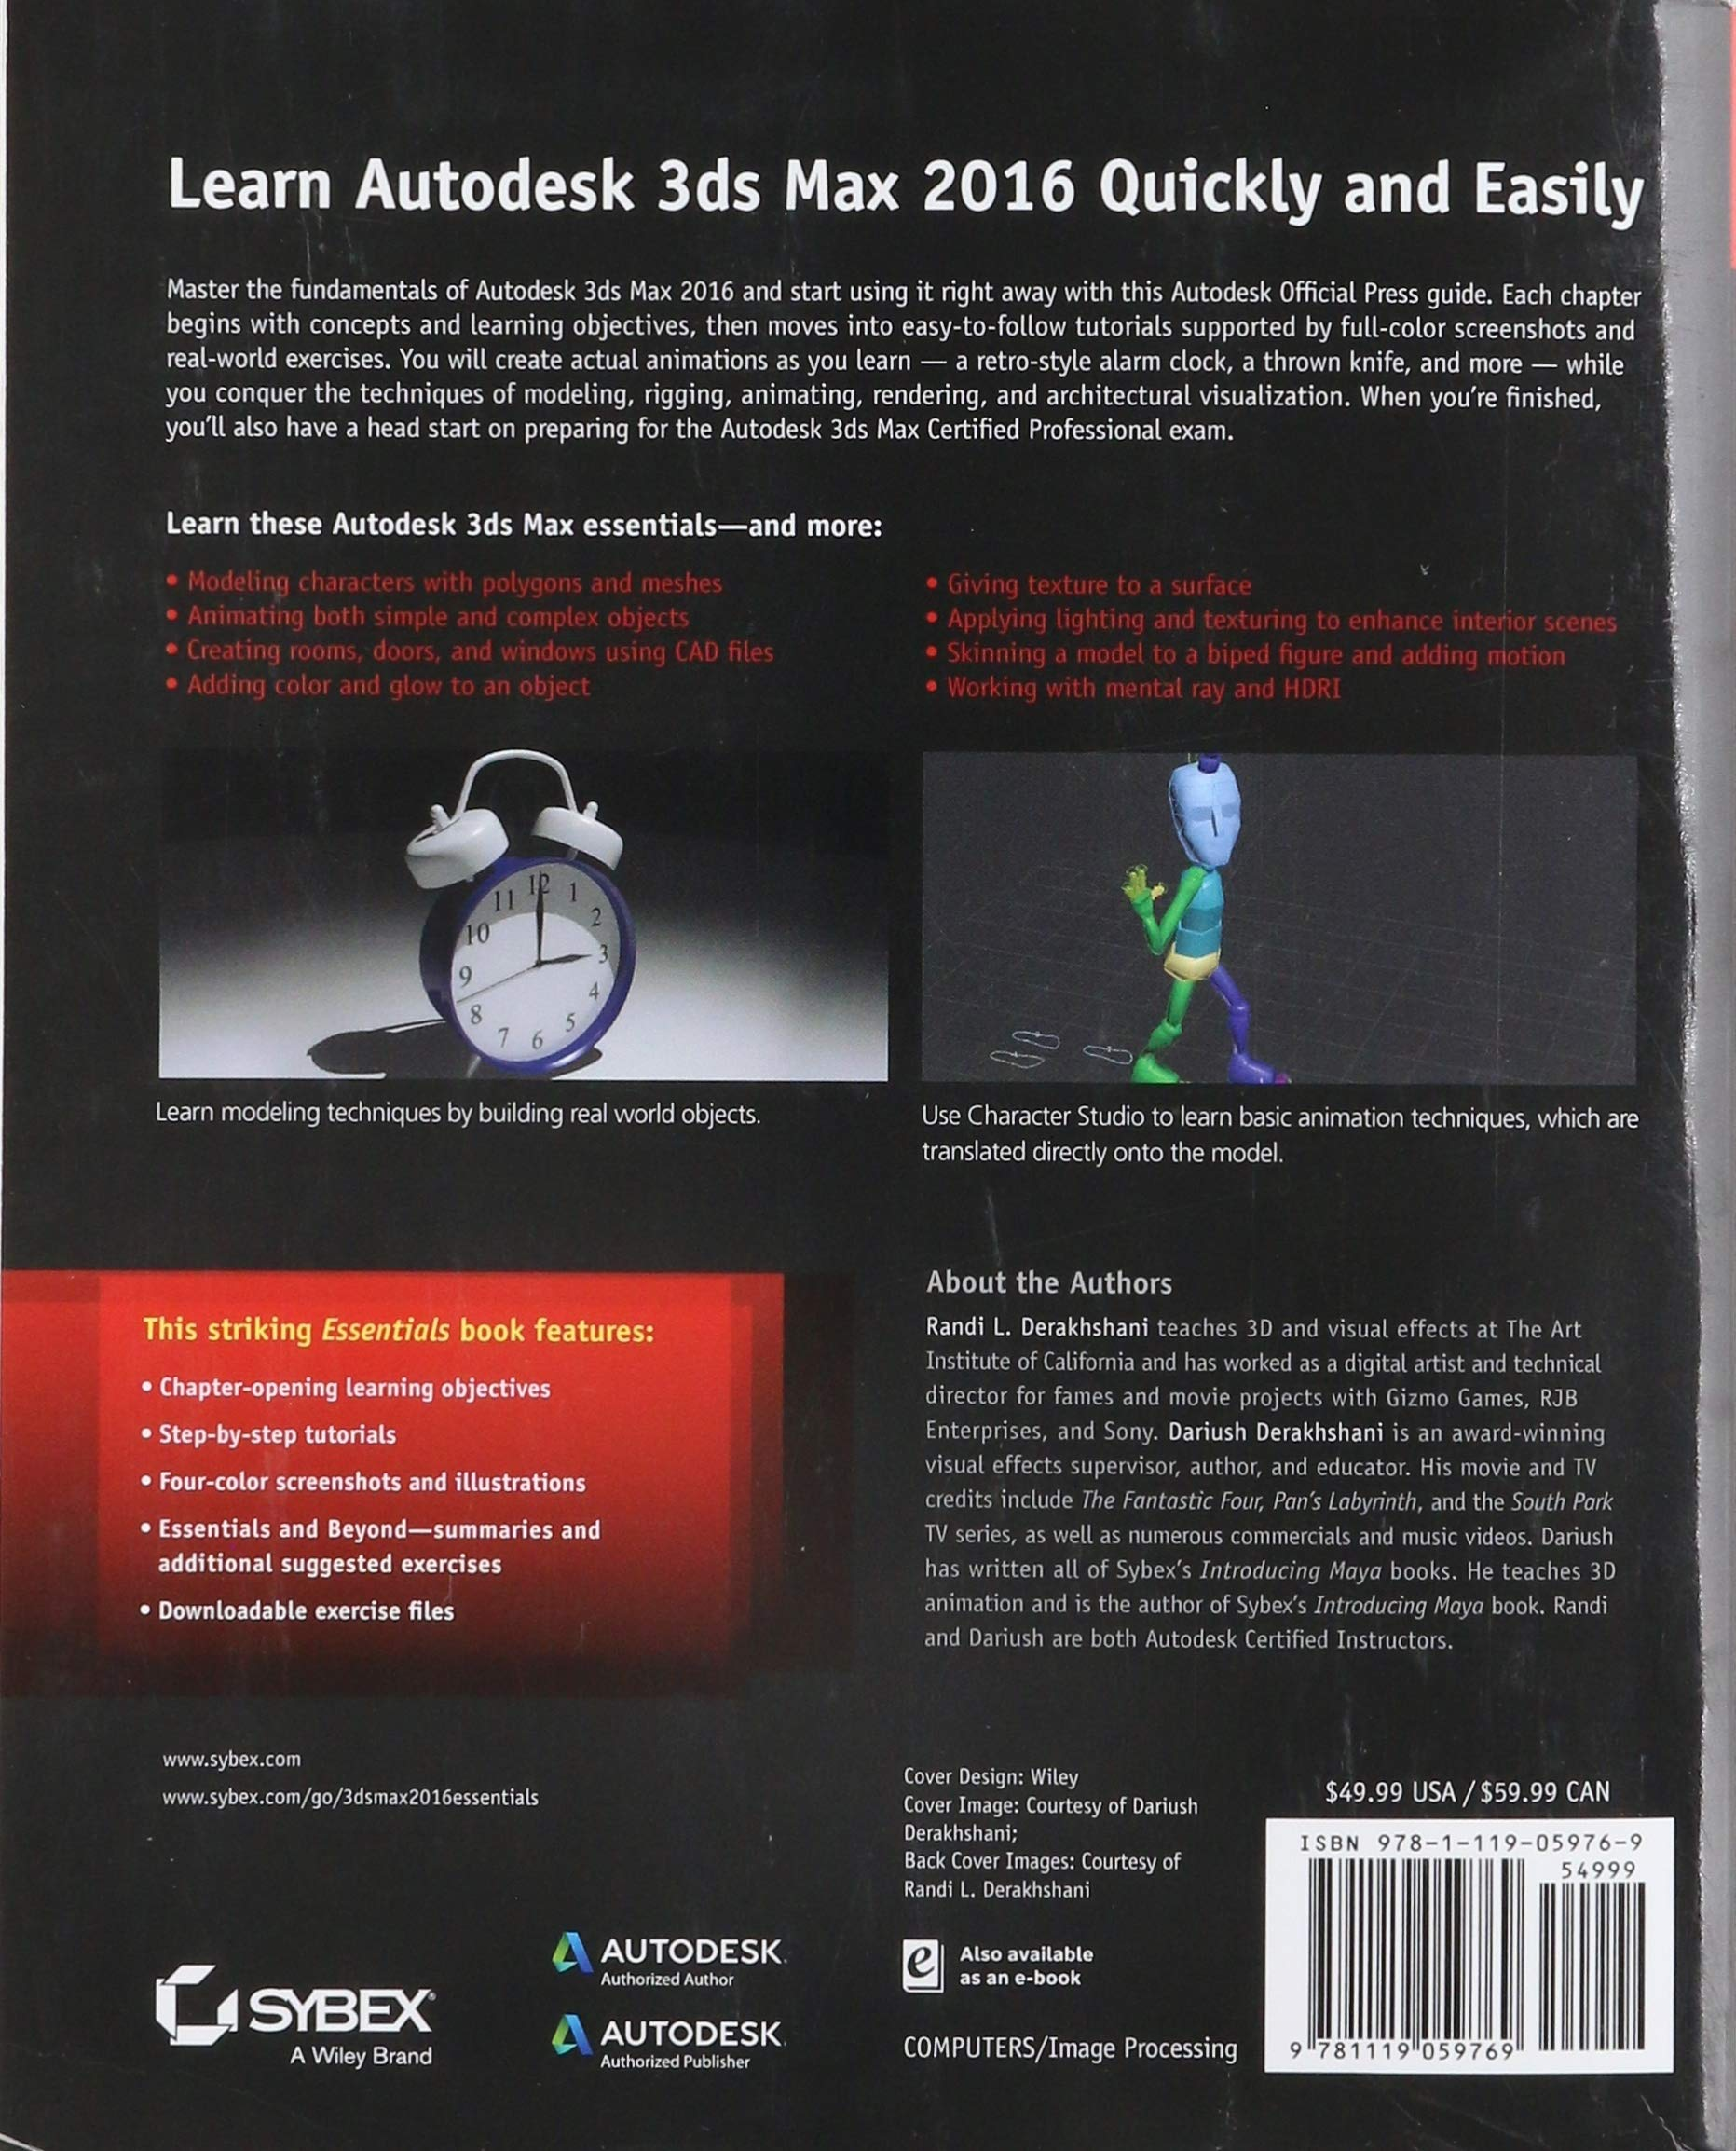 Buy Autodesk 3ds Max 2016 Essentials Book Online at Low Prices in